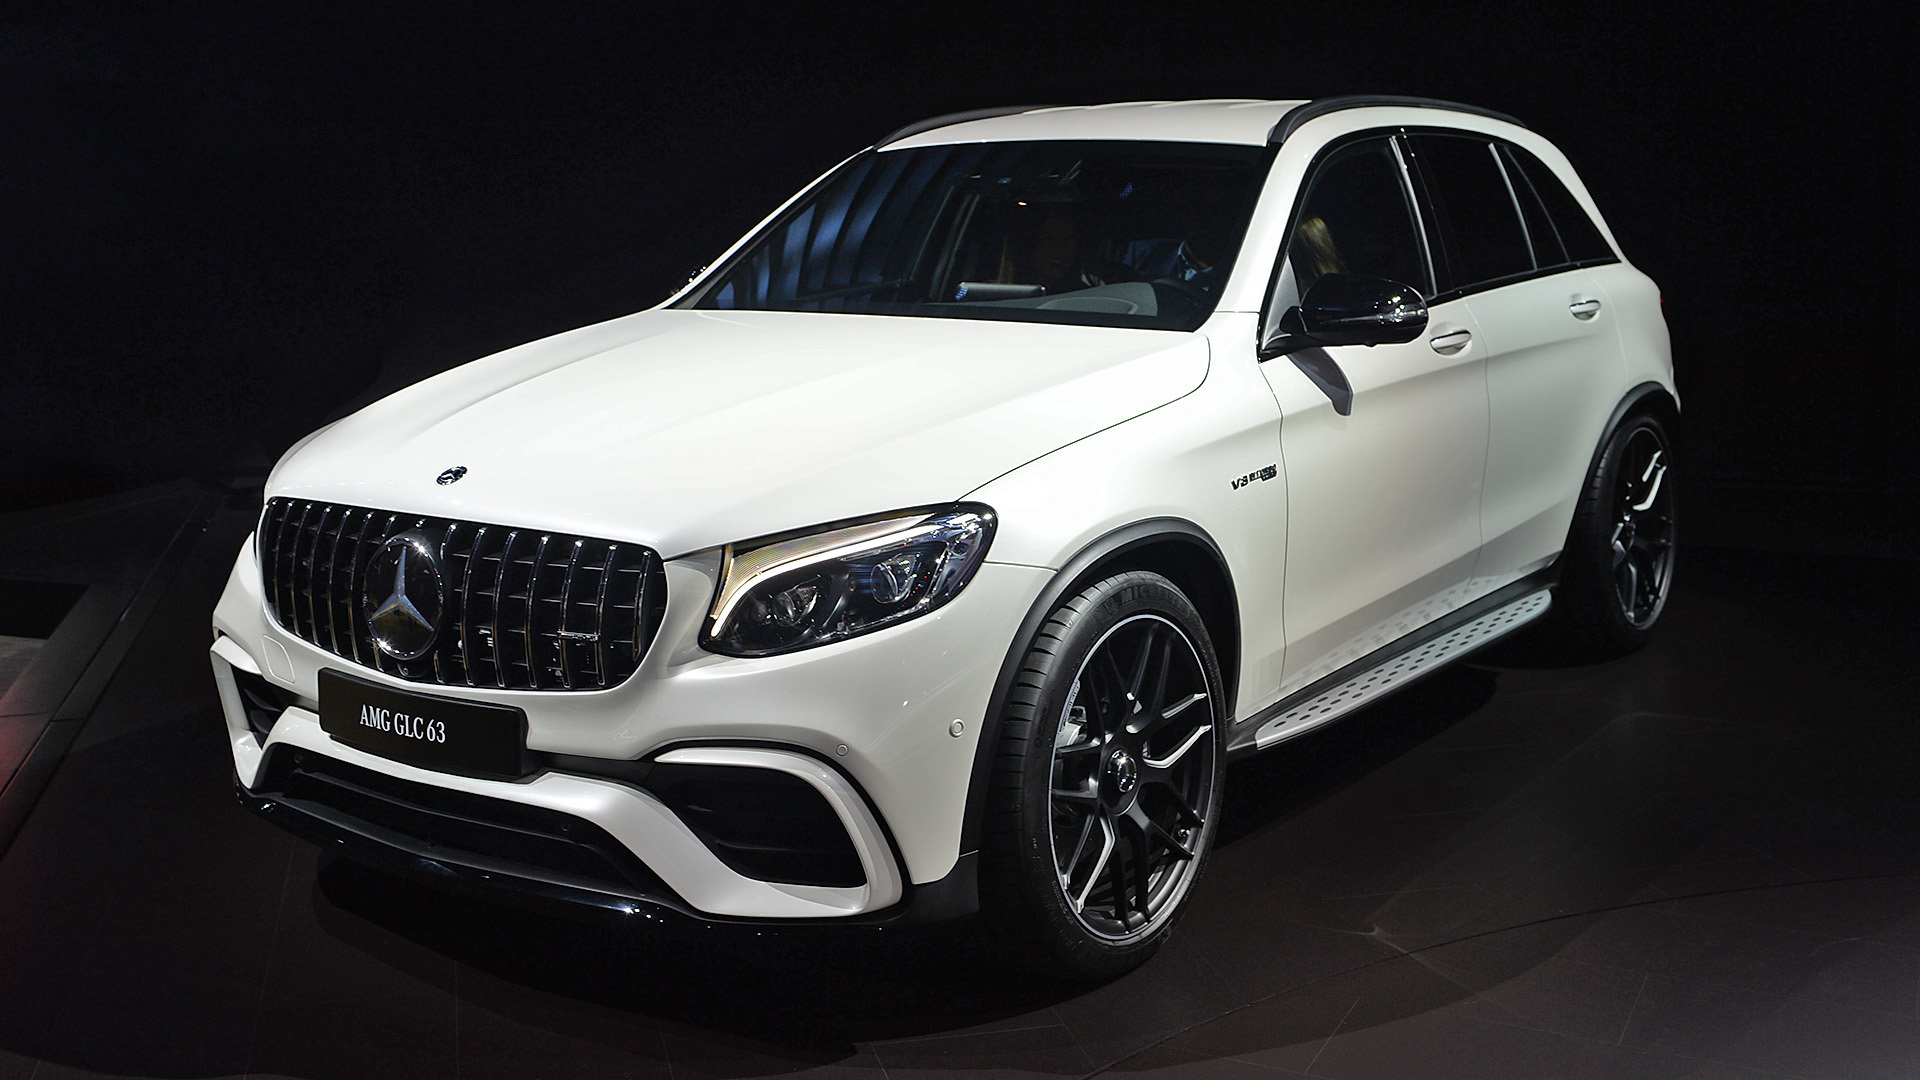 01-2018-mercedes-amg-glc63-ny-1-1 Outstanding Lincoln Continental New York Auto Show Cars Trend